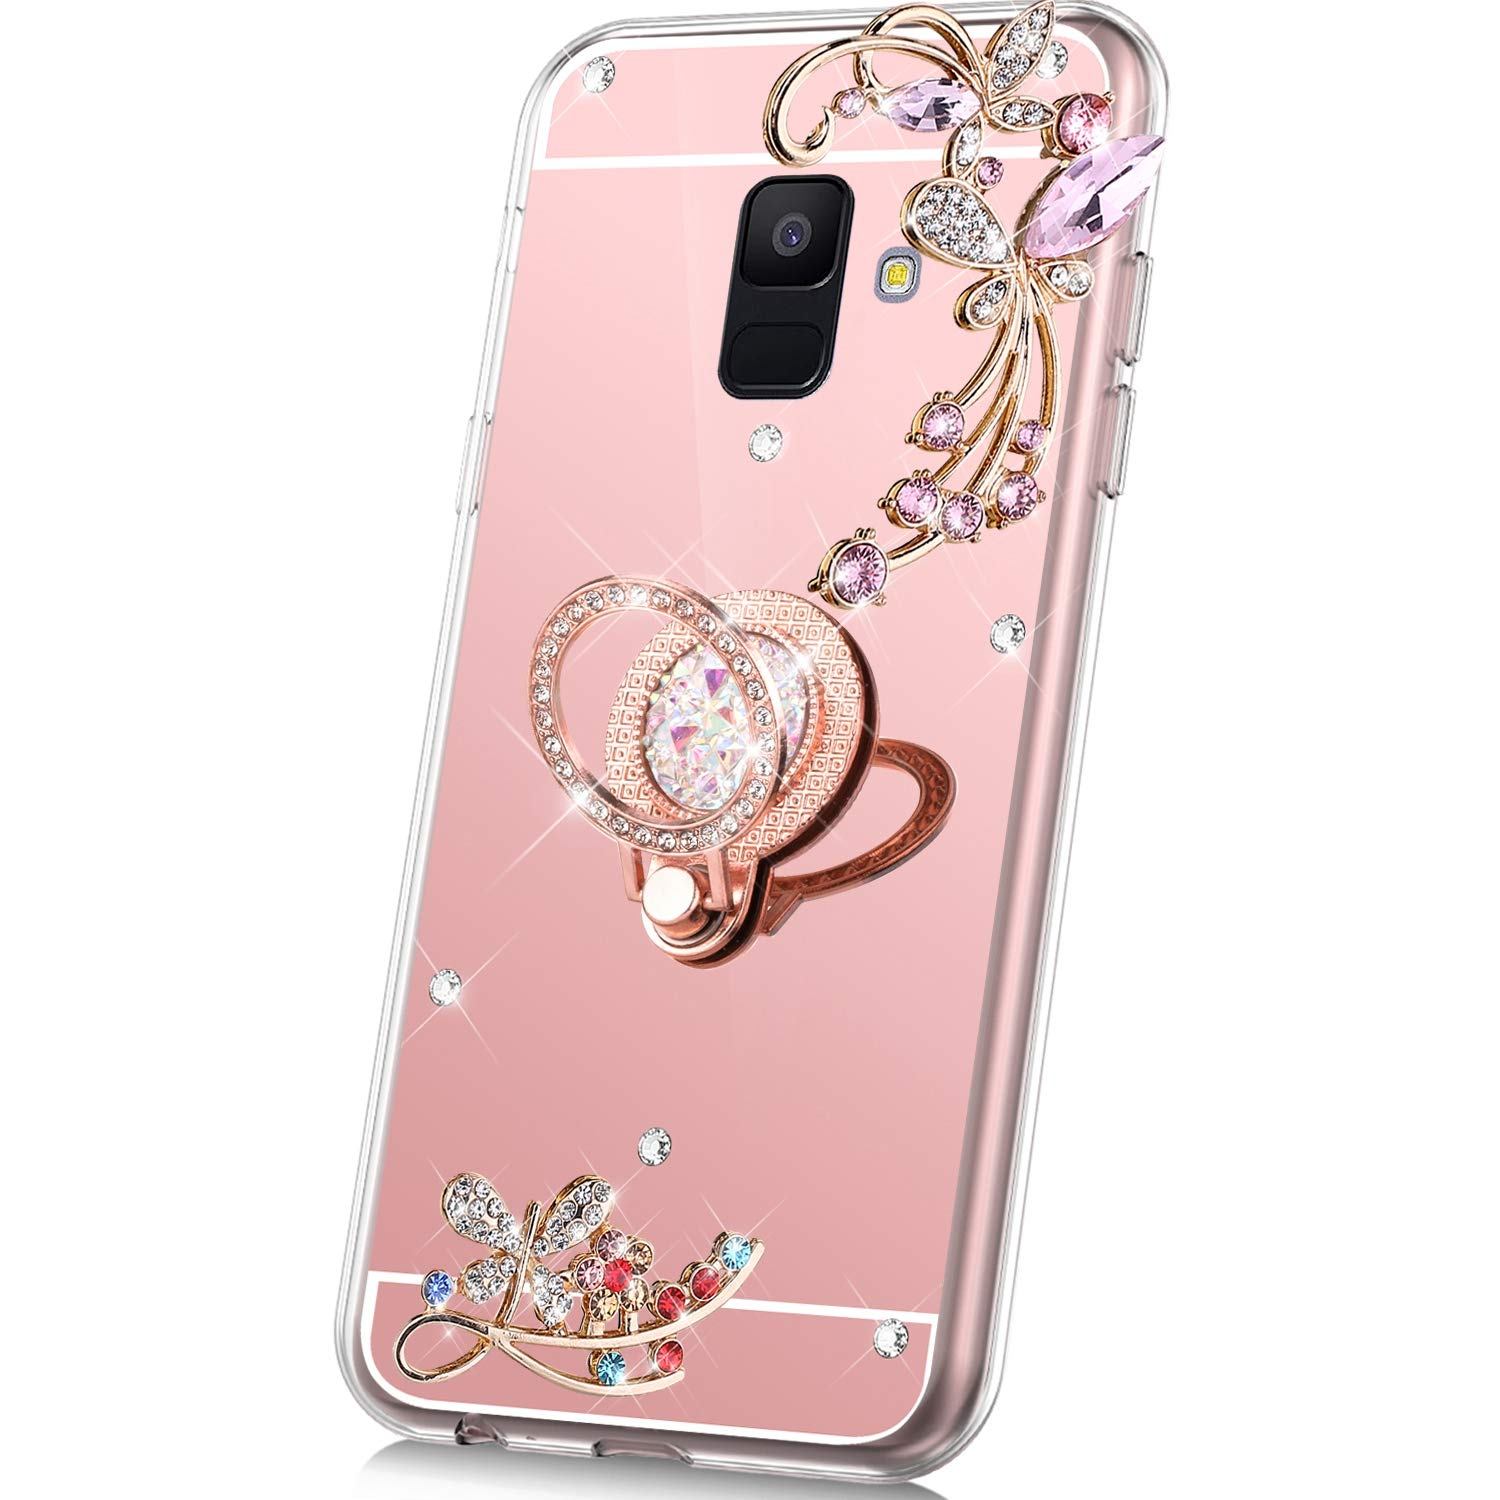 PHEZEN Case for Samsung Galaxy A6 2018 Mirror Case,Bling Glitter Flowers Sparkle Rhinestone Mirror Back TPU Silicone Case Cover with Ring Kickstand Diamond Crystal Case for Galaxy A6 2018,Rose Gold by PHEZEN